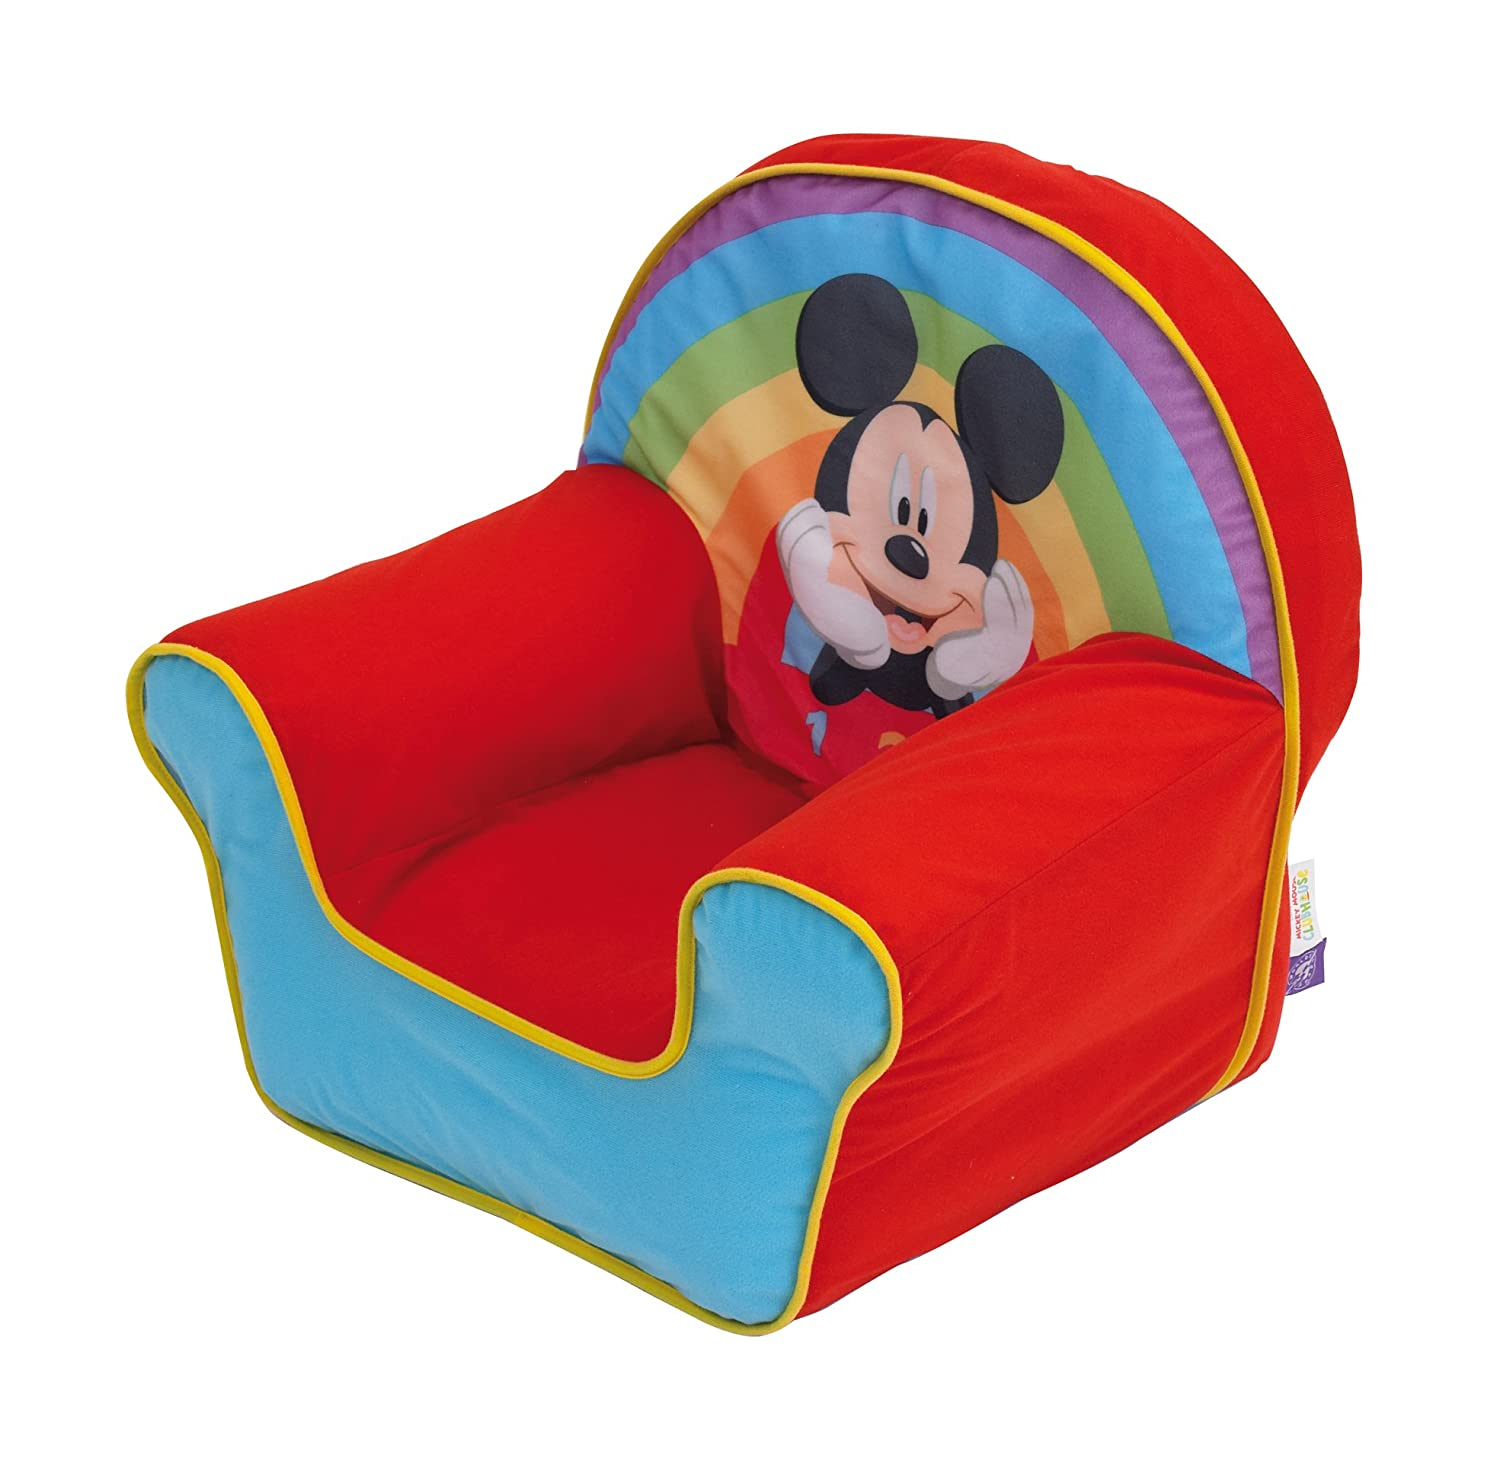 Disney Mickey Mouse Inflatable Chair For Kids Worlds Apart 280MIC01E Movie & TV